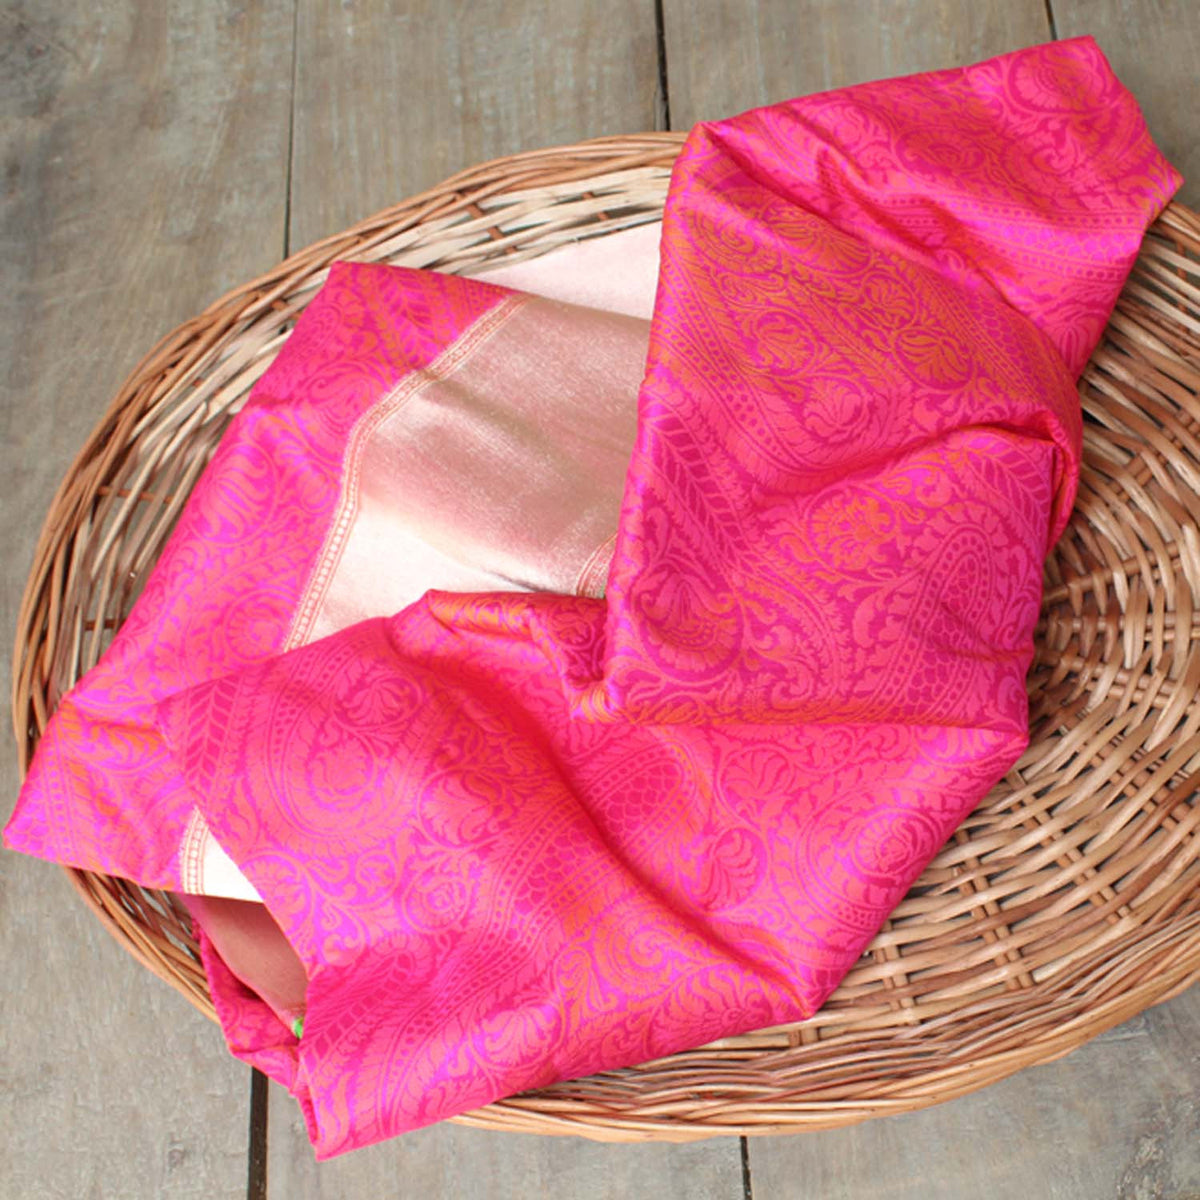 Indian Pink-Orange Shot Color Pure Georgette Silk Banarasi Handloom Saree - Tilfi